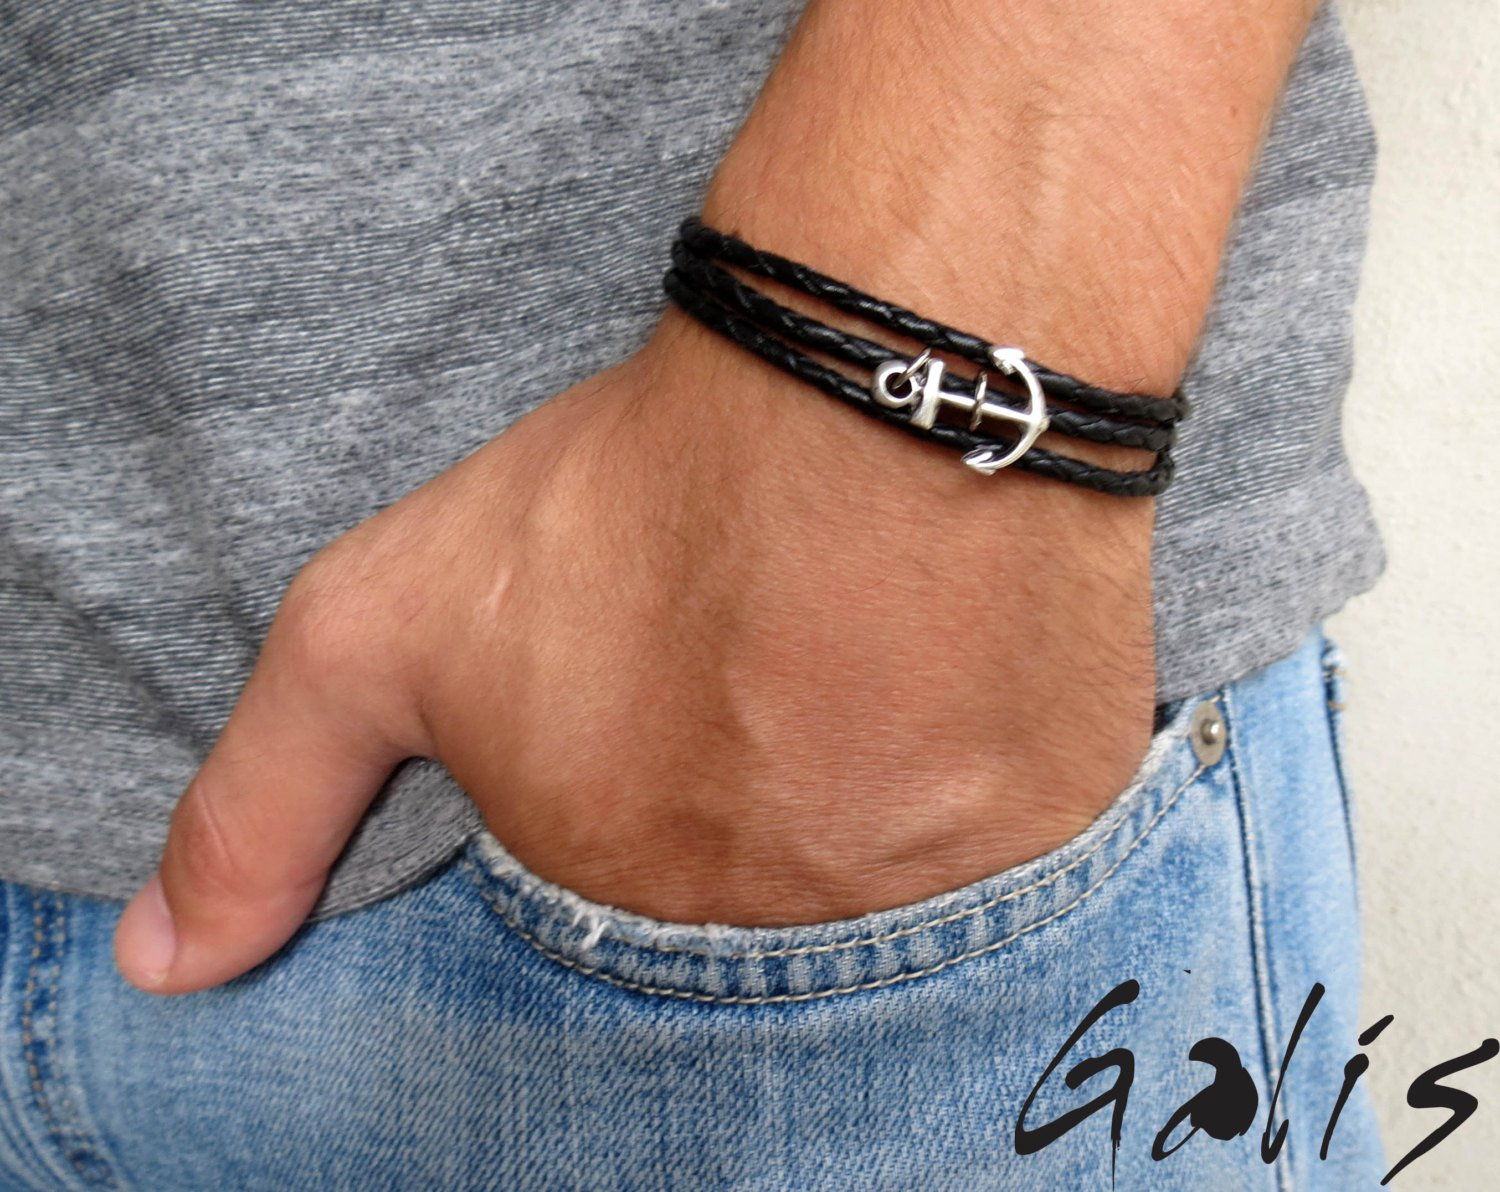 Men's Bracelet - Men's Anchor Bracelet - Men's Leather Bracelet - Men's Jewelry - Men's Gift